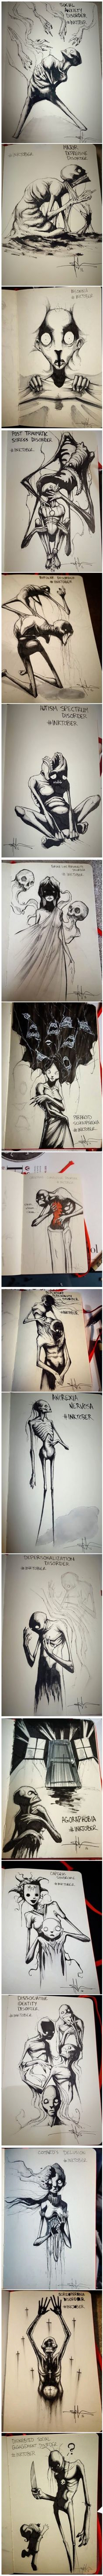 Artist Shawn Coss Illustrates Mental Illness And Disorders